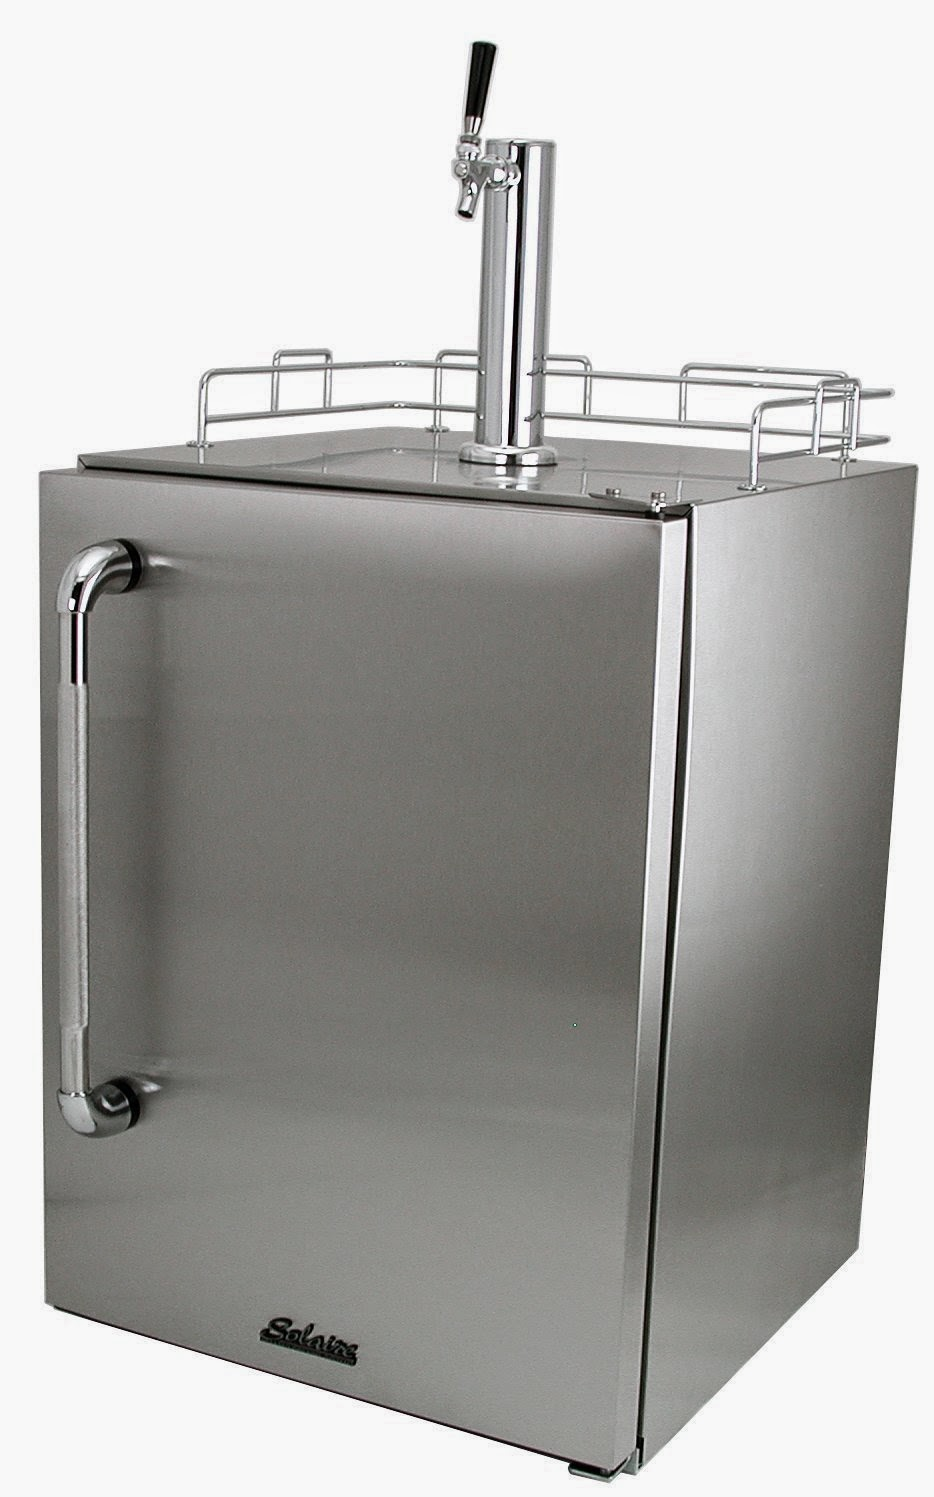 Solaire Outdoor Certified Refrigerated Keg Beer Cooler